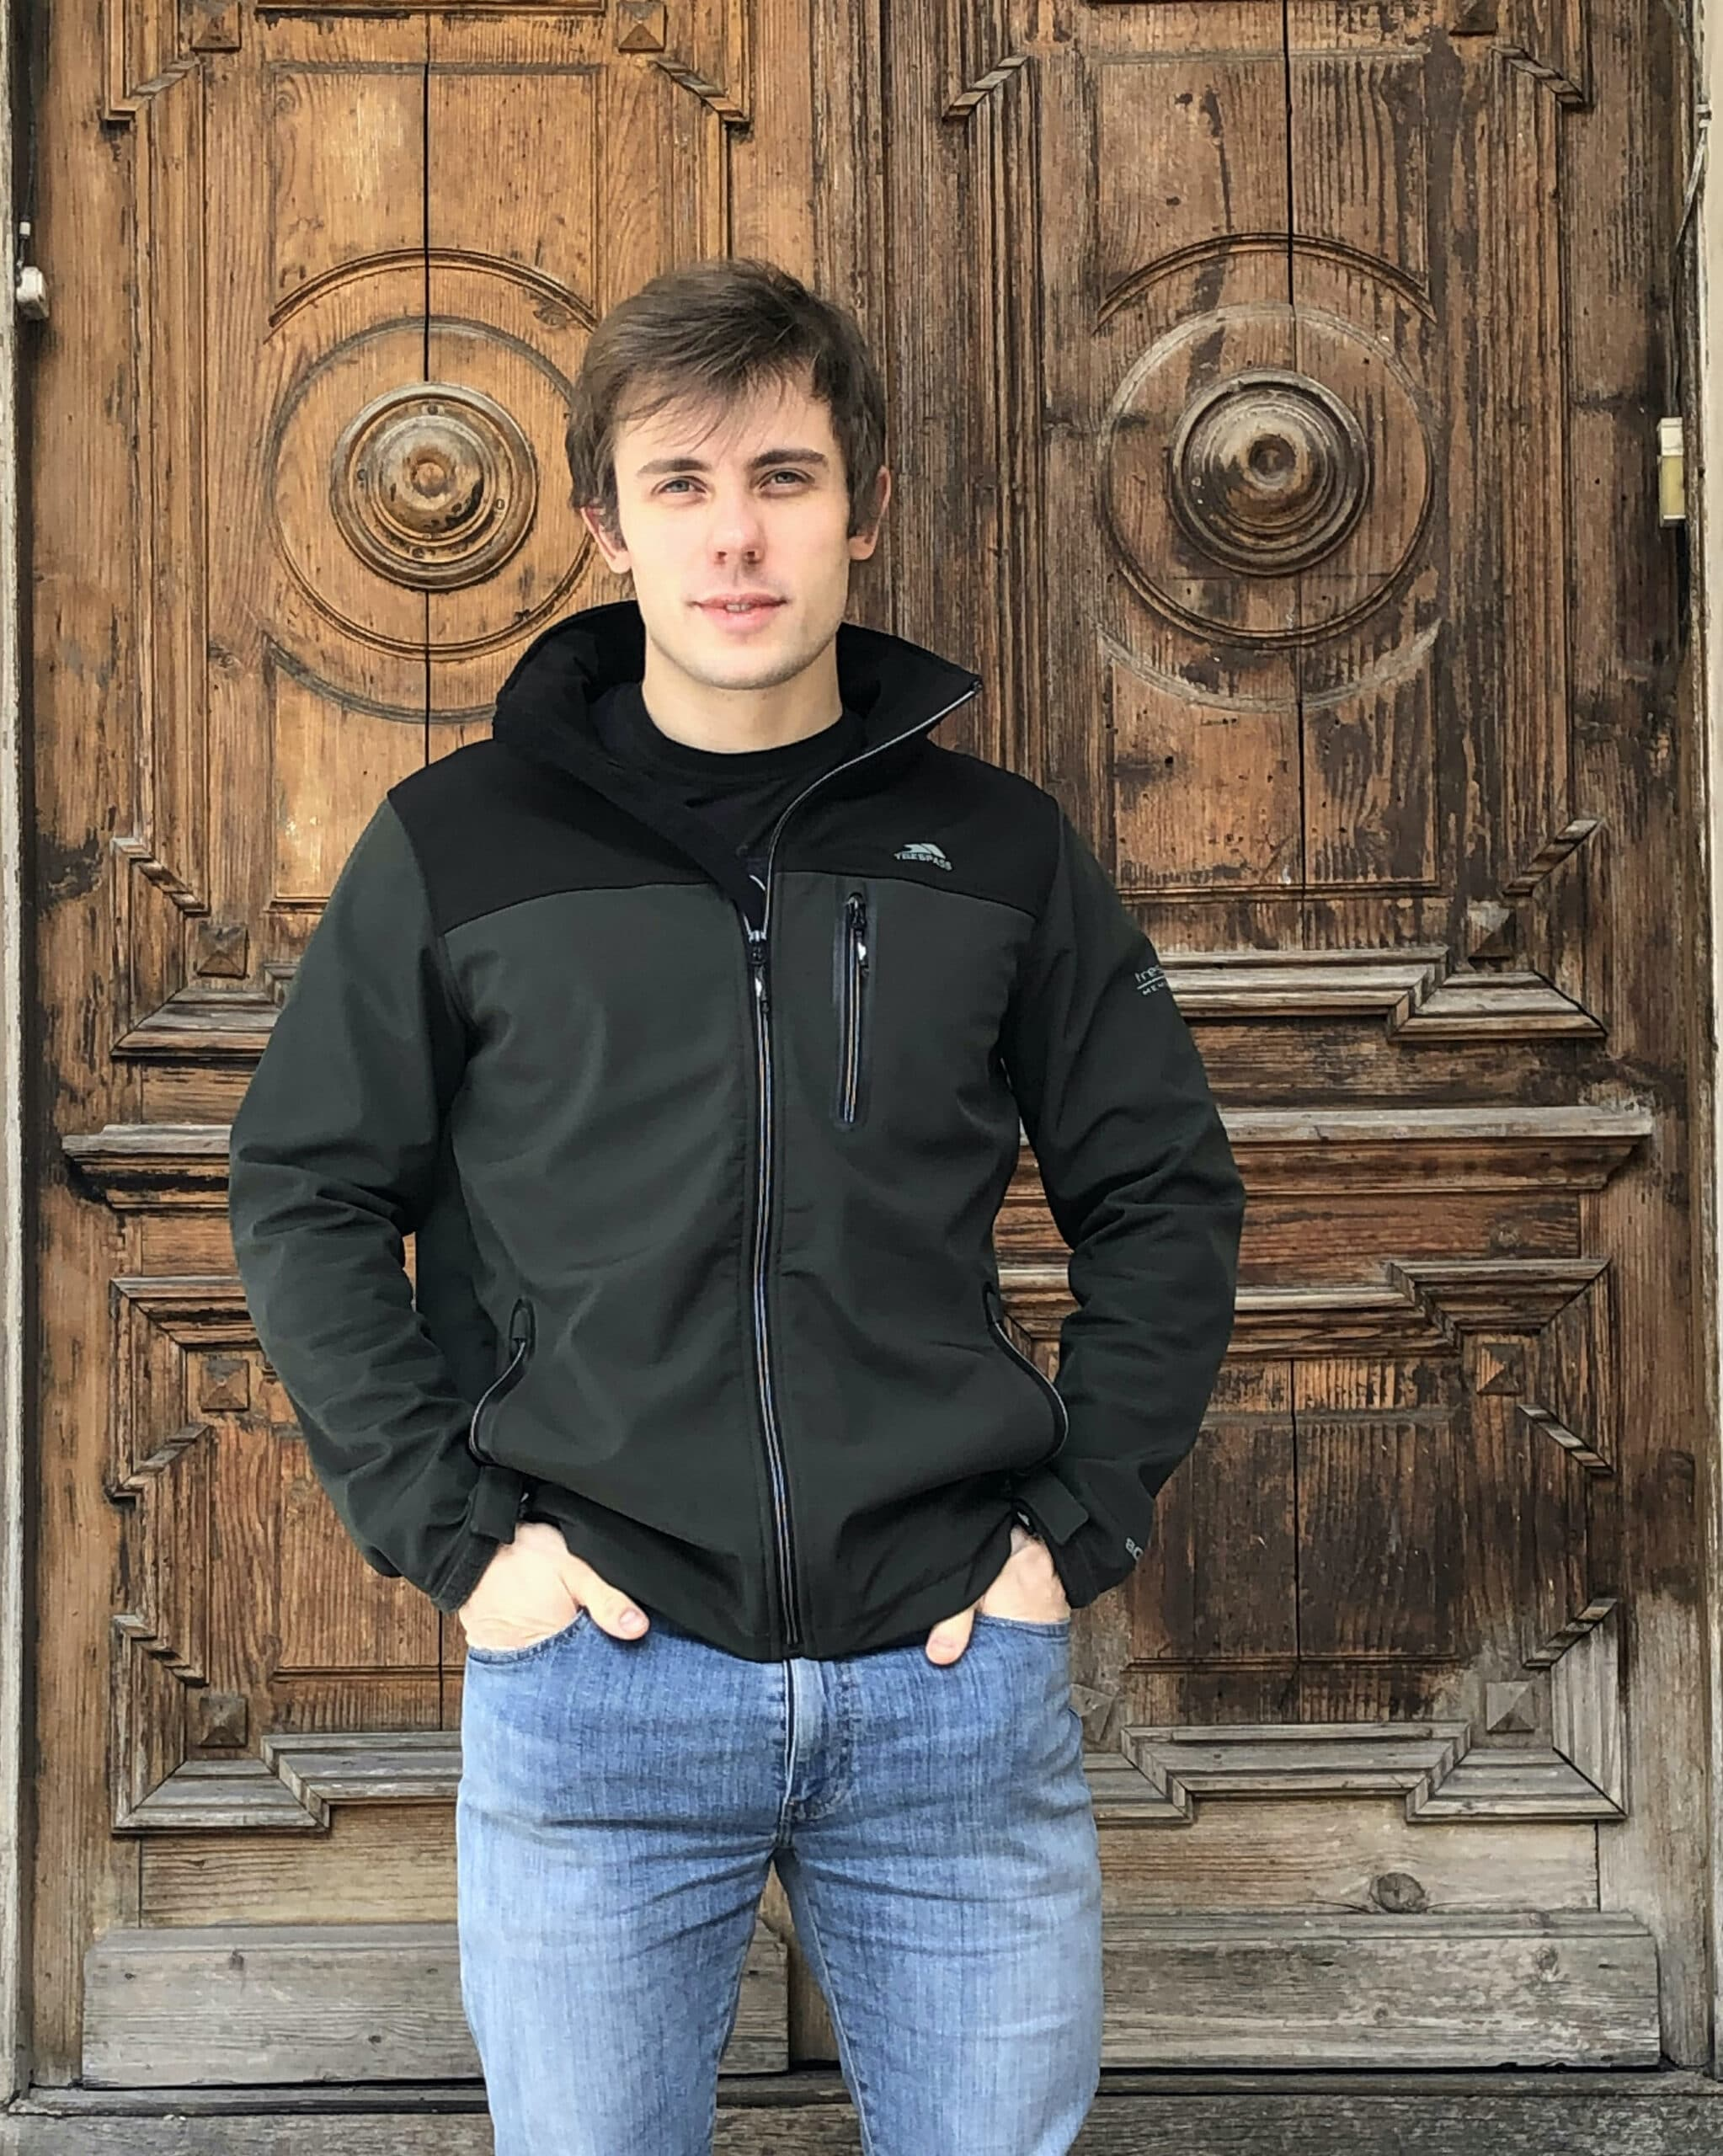 Picture of Co-Founder, Mircea Cornelison, in green jacket and blue jeans